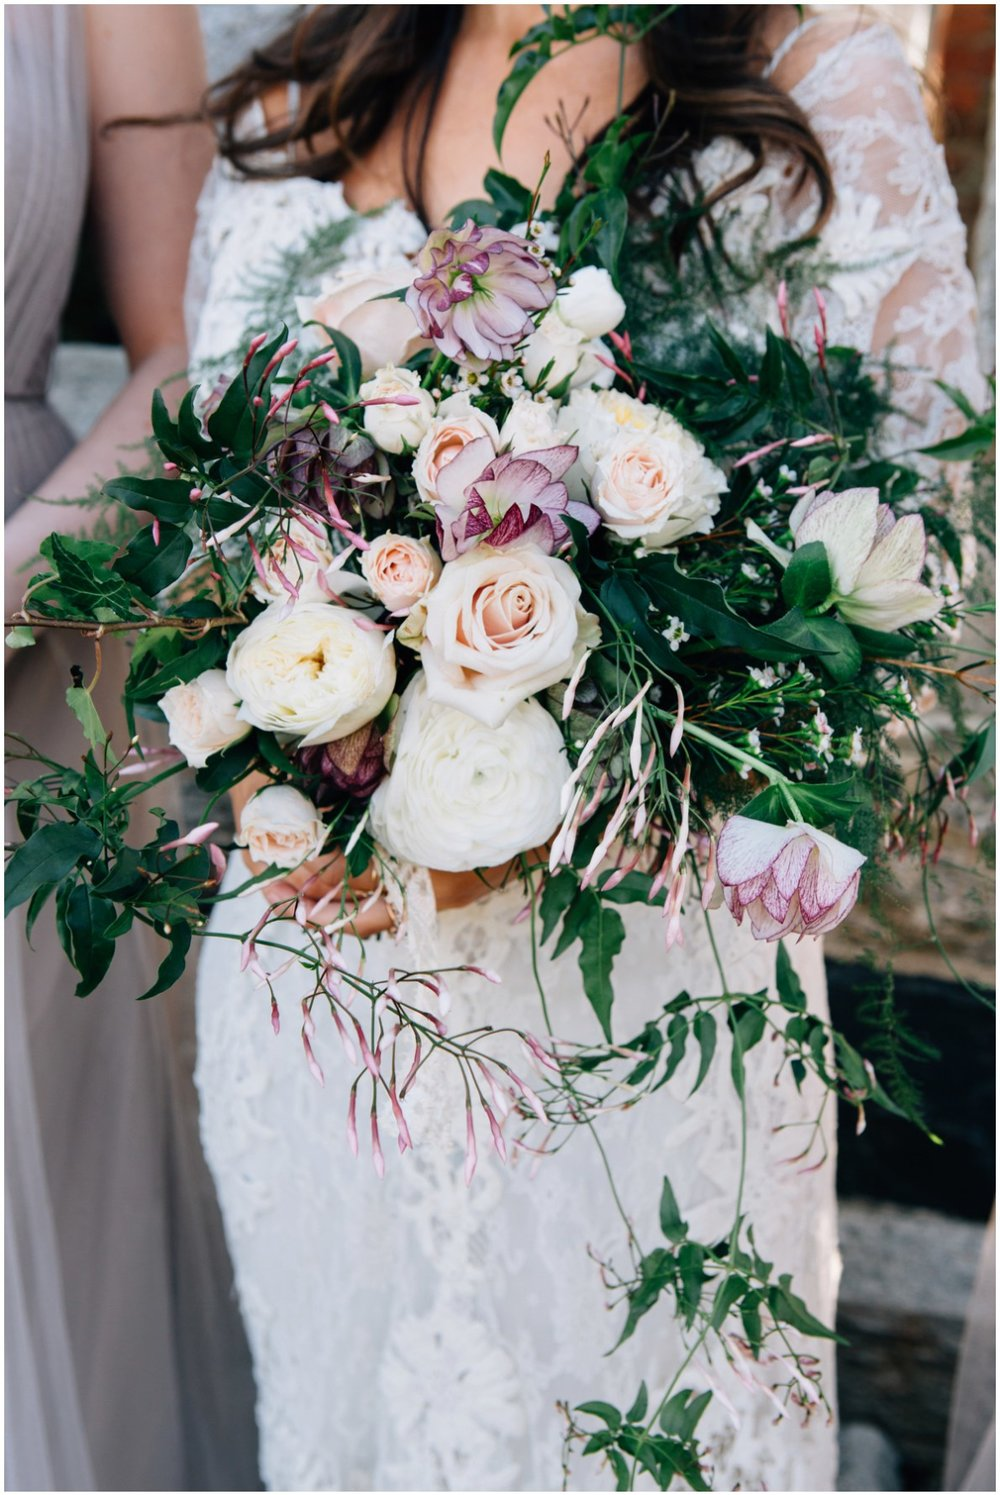 I used wild cascading jasmine, hellebores both white and tinged purple, plumosa, ferns, ranunculus, and sweet smelling and spiraling garden roses which were the perfect compliment to her vintage and pure romance vibes.